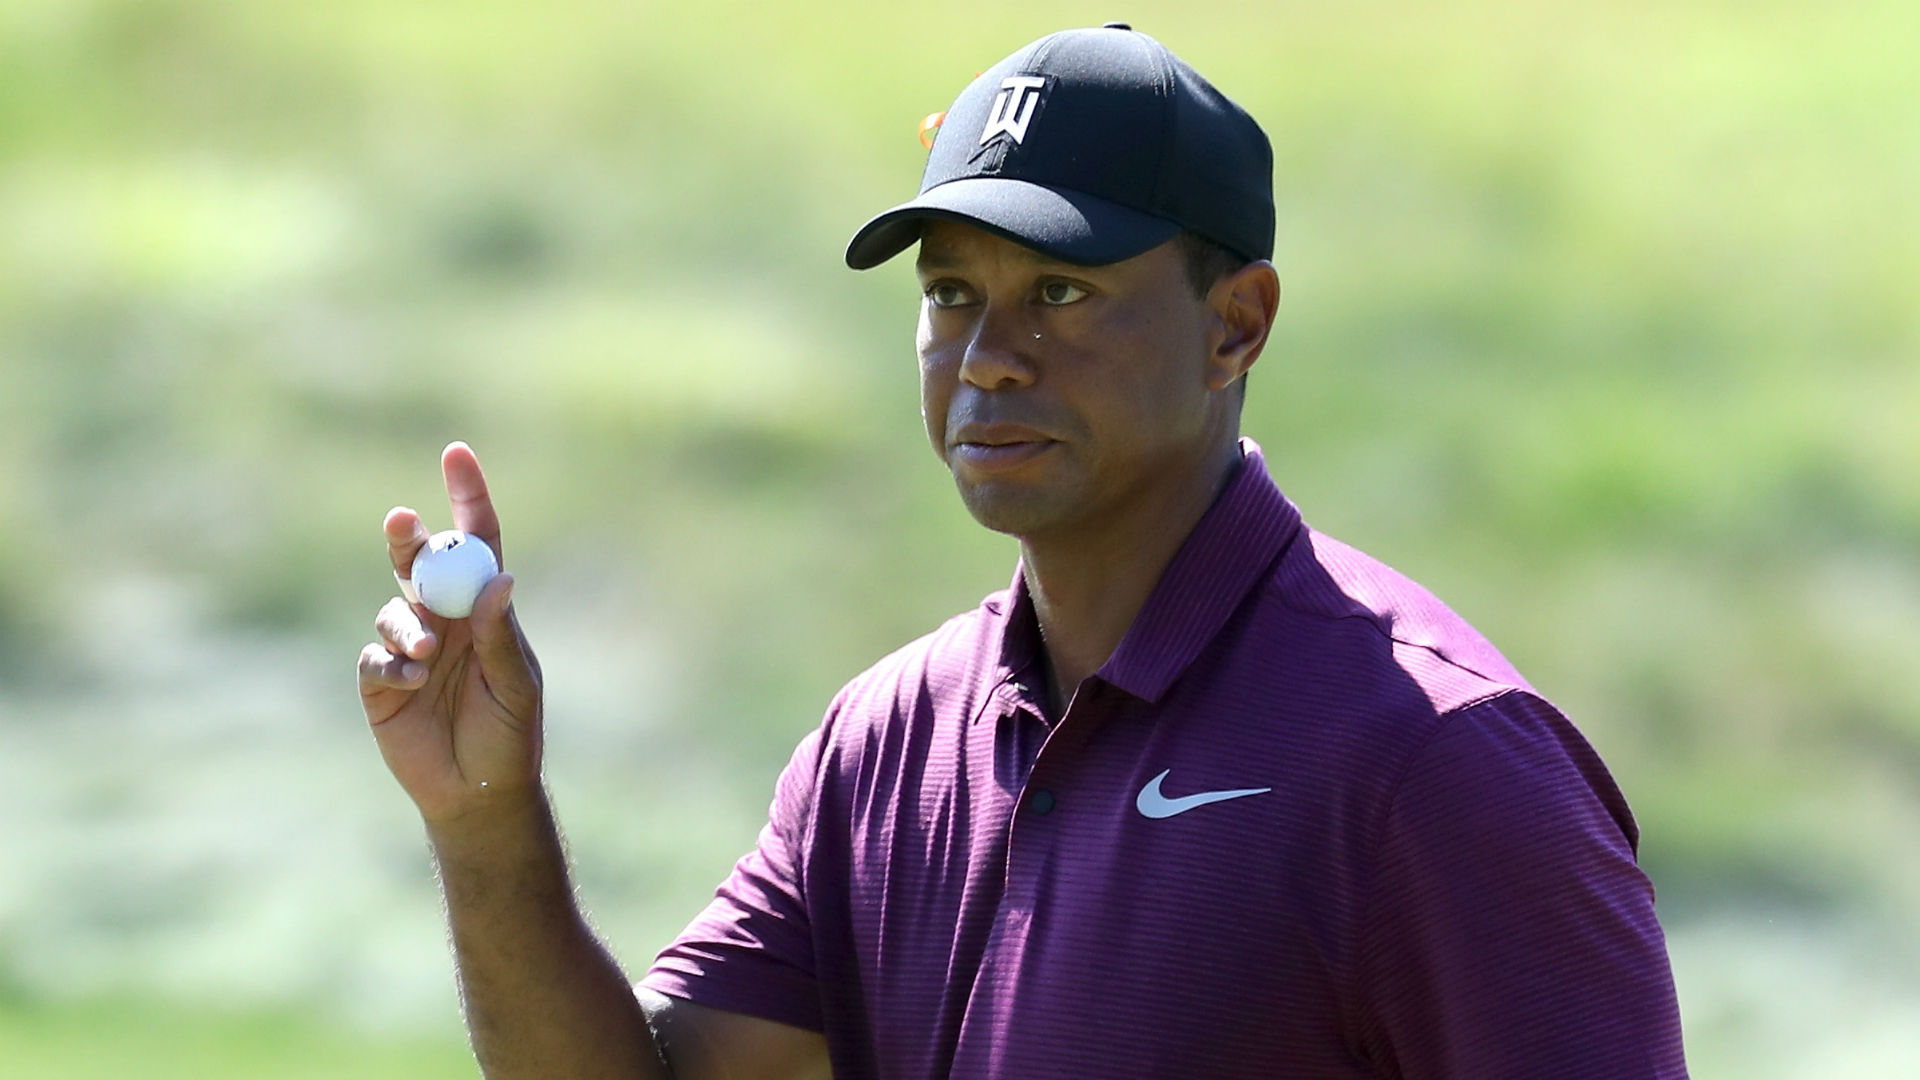 PGA Championship 2018 featured groups showcase Tiger Woods, Rory McIlroy side by side